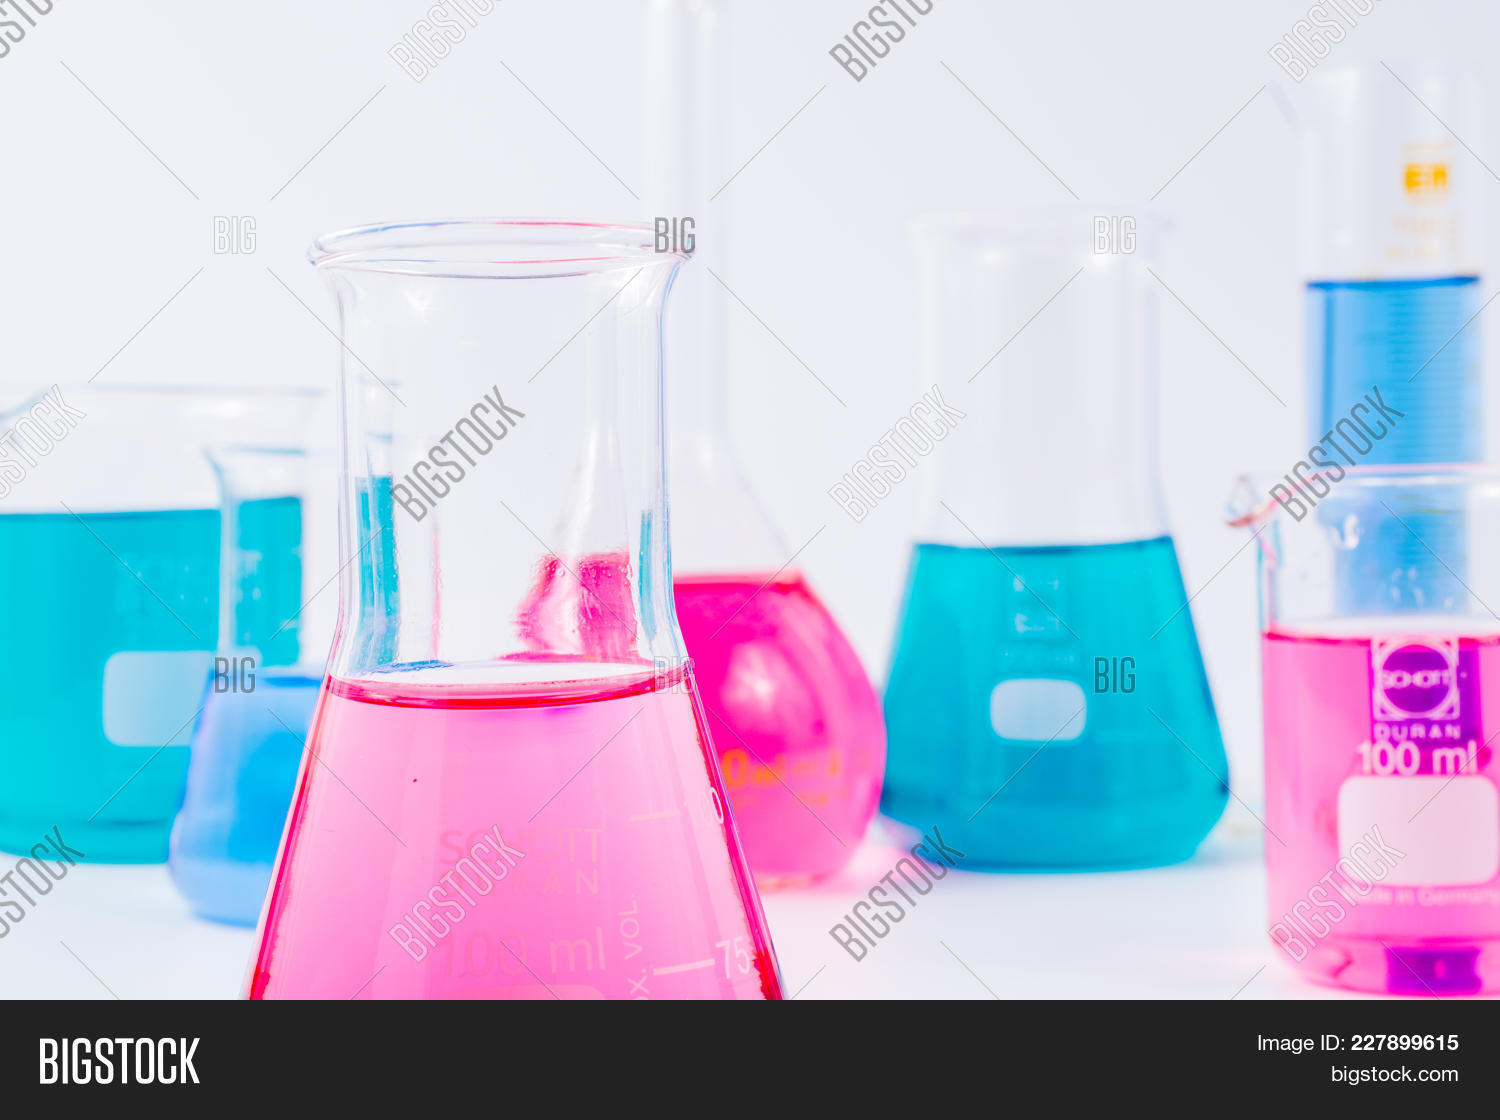 Chemical laboratory beakers powerpoint template chemical your text toneelgroepblik